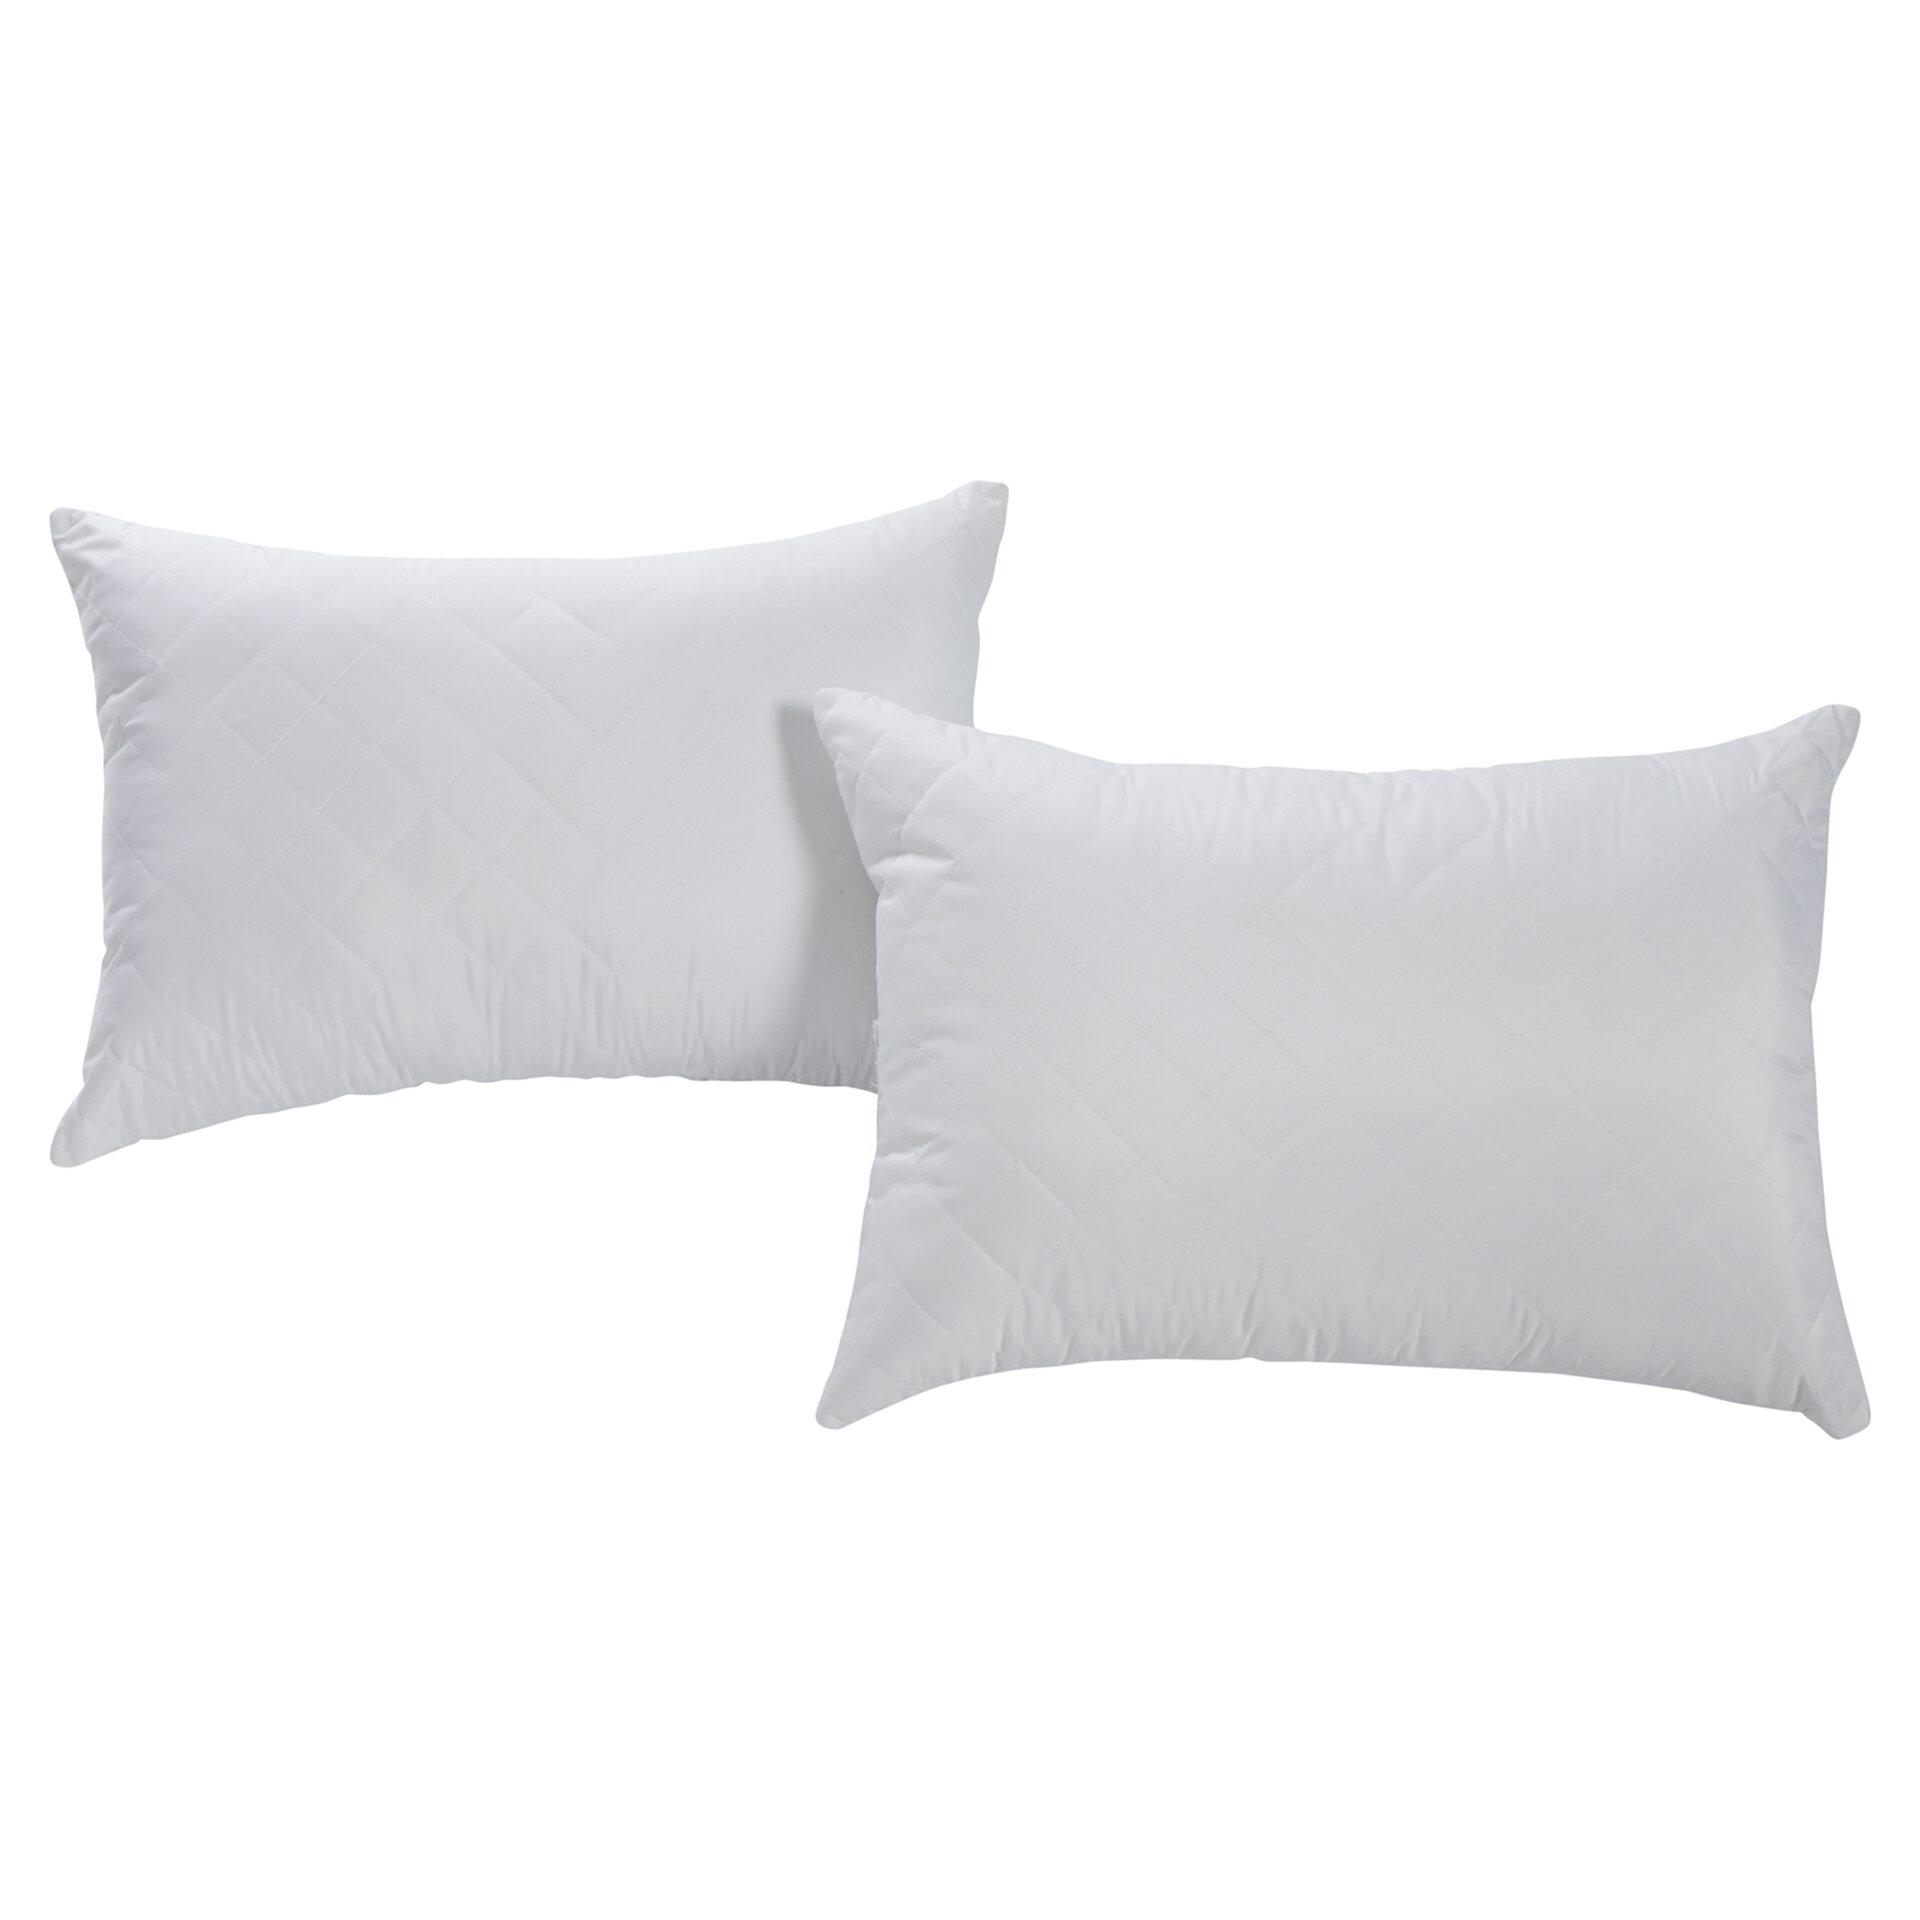 Wayfair Sleep Wayfair Sleep Firm Quilted Pillow & Reviews Wayfair.ca